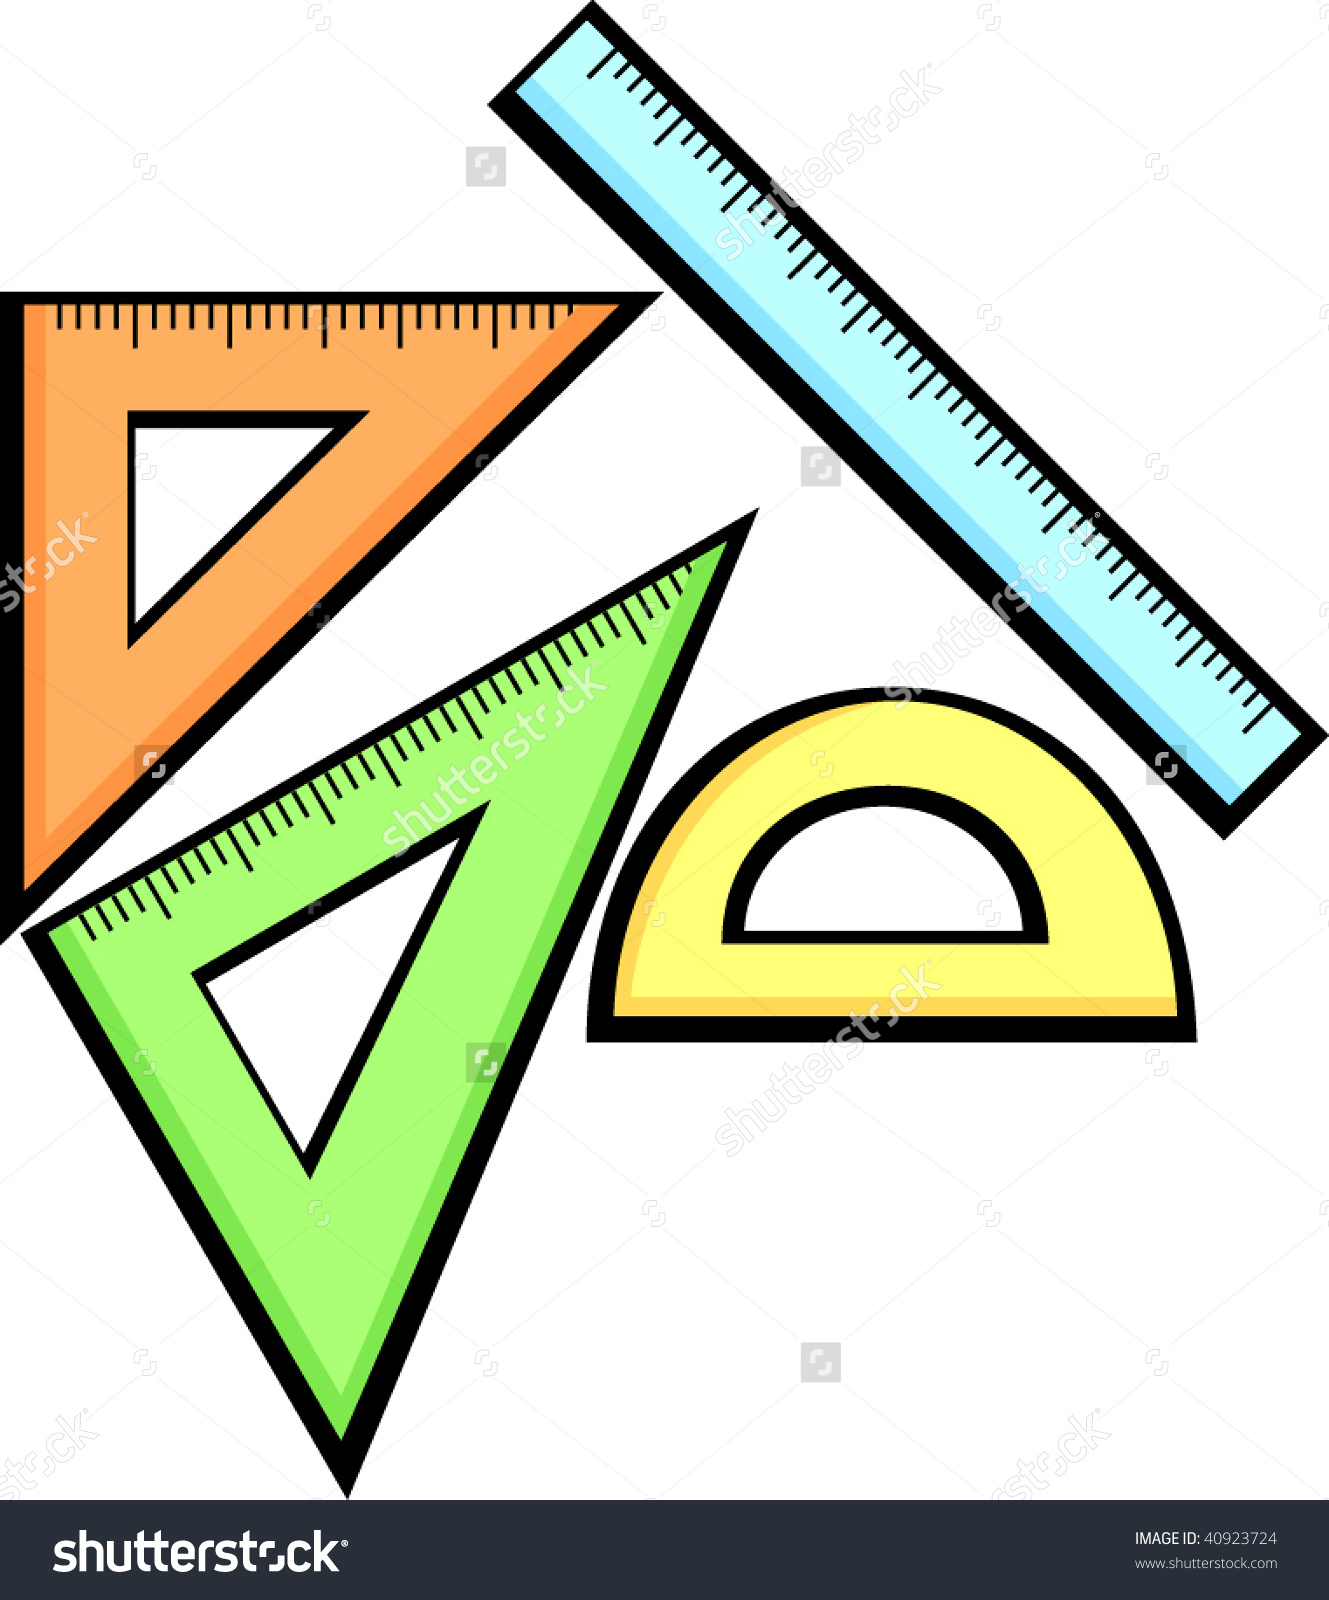 Clipart geometry.